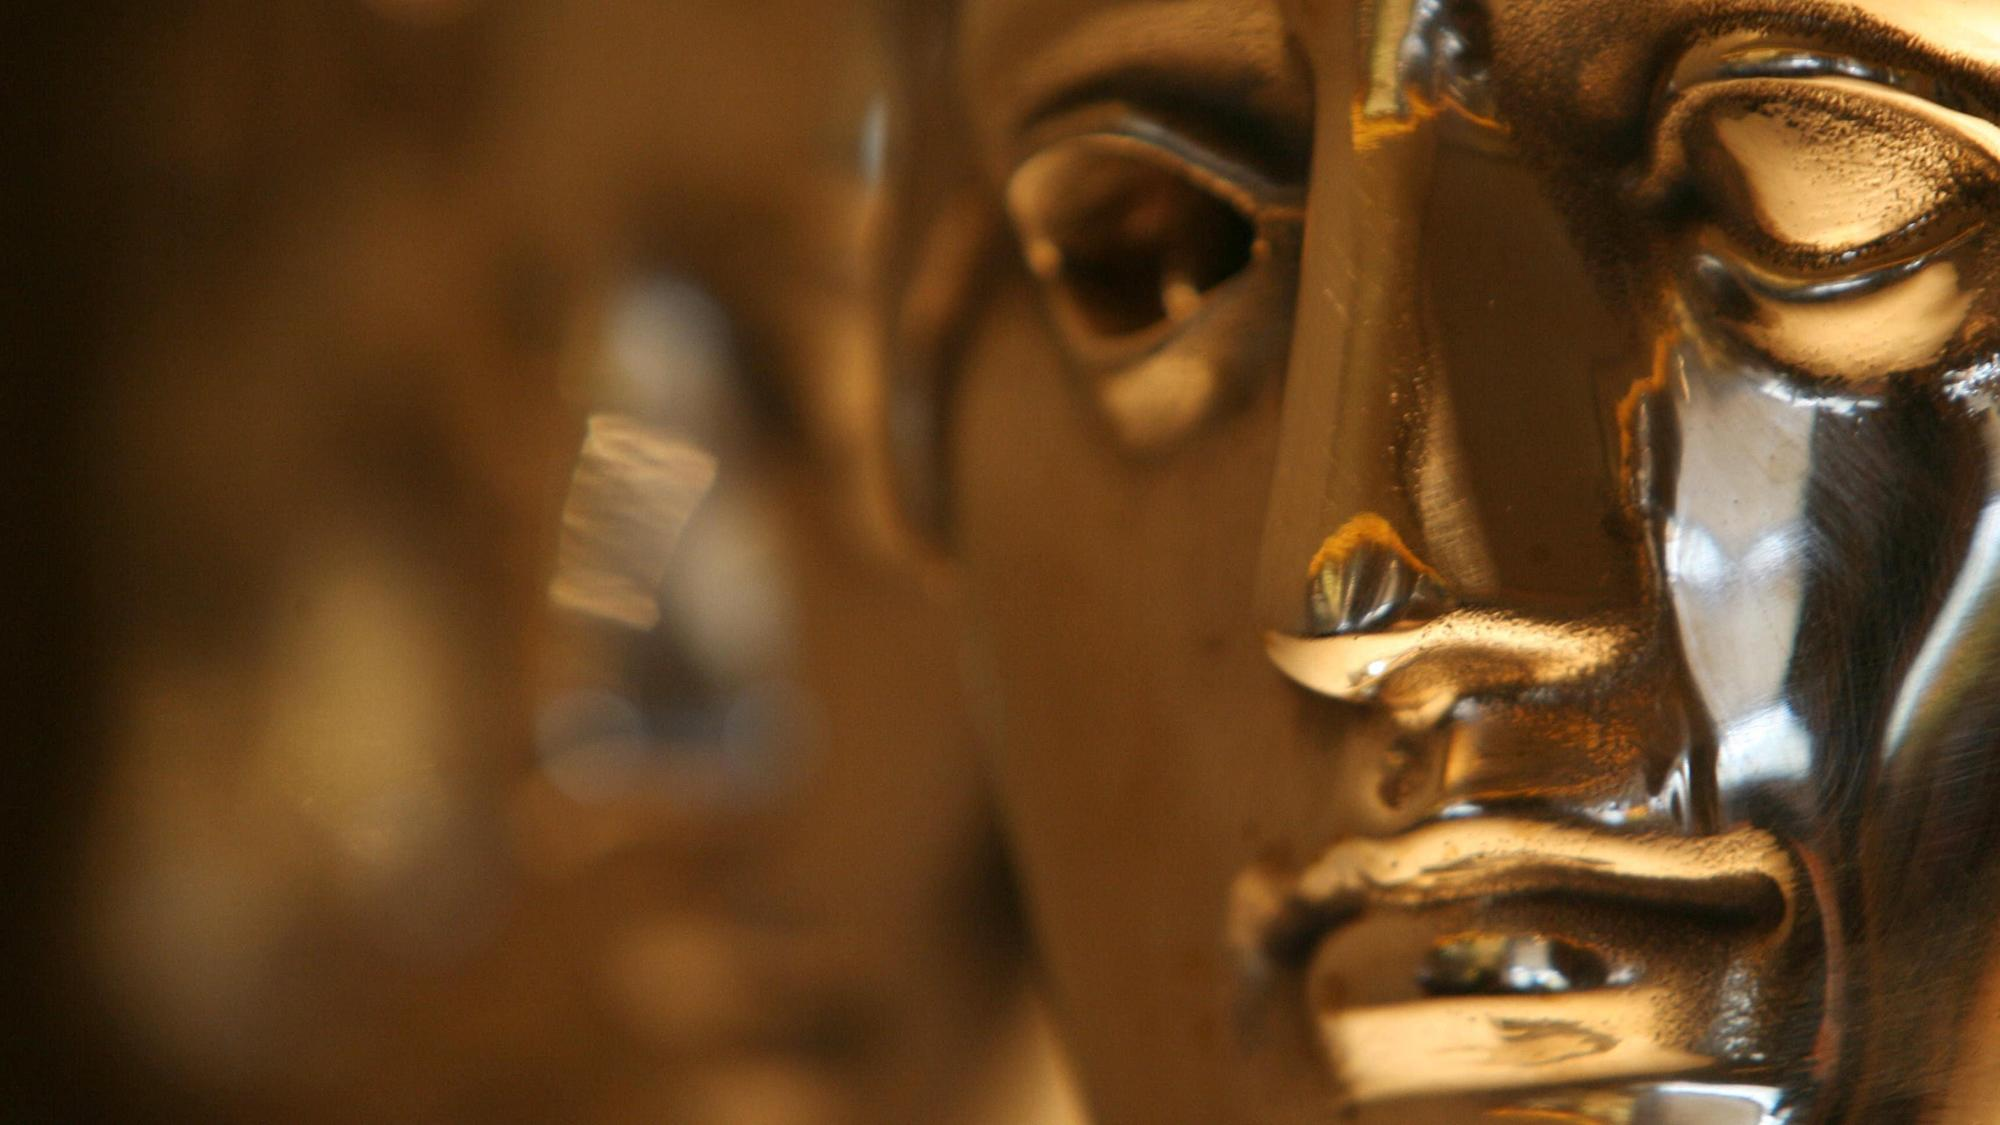 Bafta film awards 2021: in numbers